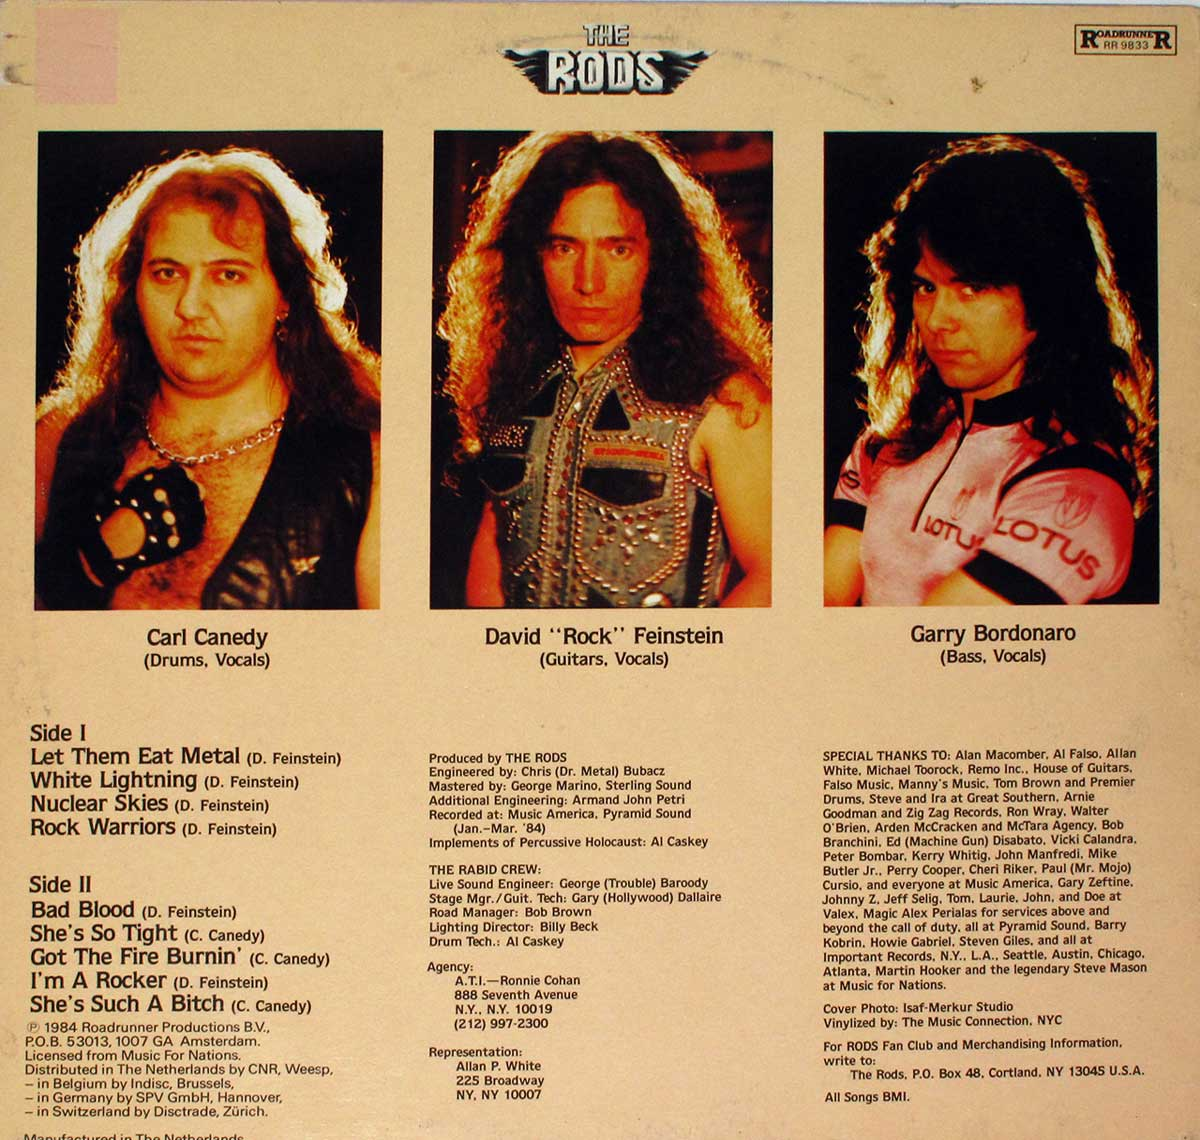 High Resolution Photo Album Back Cover of The RODS - Let Them Eat Metal https://vinyl-records.nl